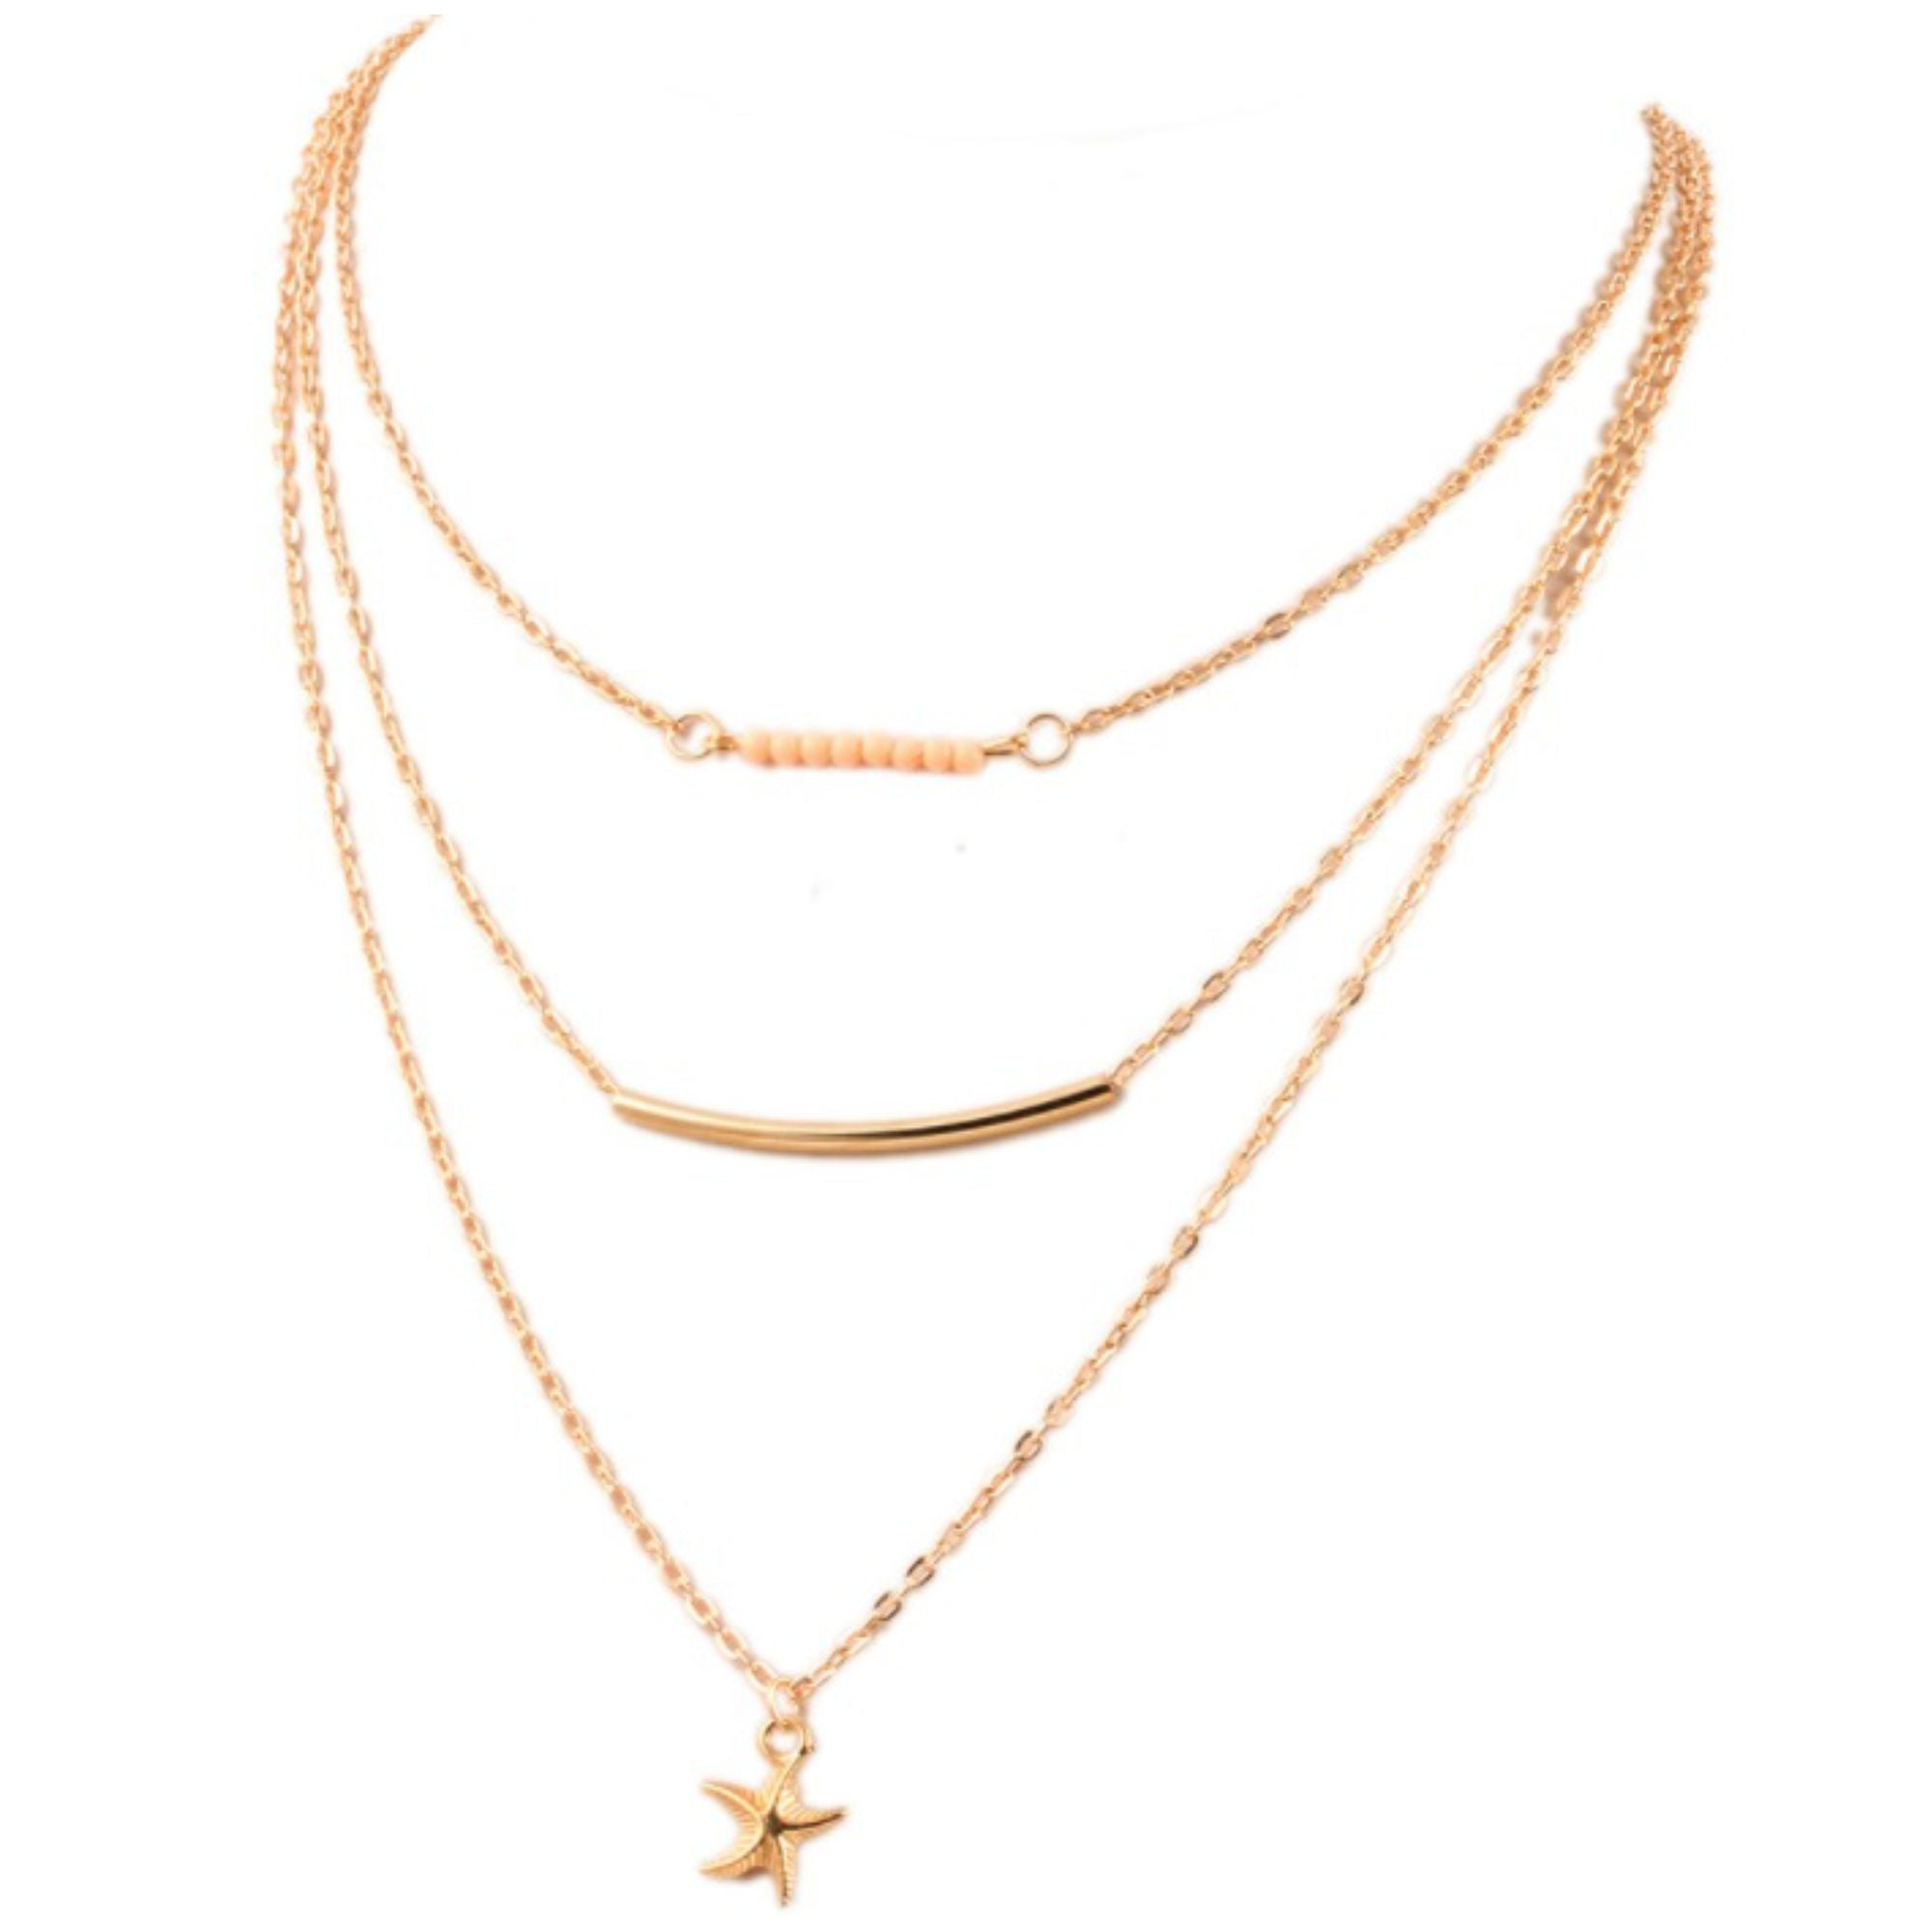 Wholesale fashion necklaces for retailers ablaze wholesale jewelry wholesale thin 3 layer bar star fashion pendant necklace ablaze wholesale jewelry aloadofball Image collections